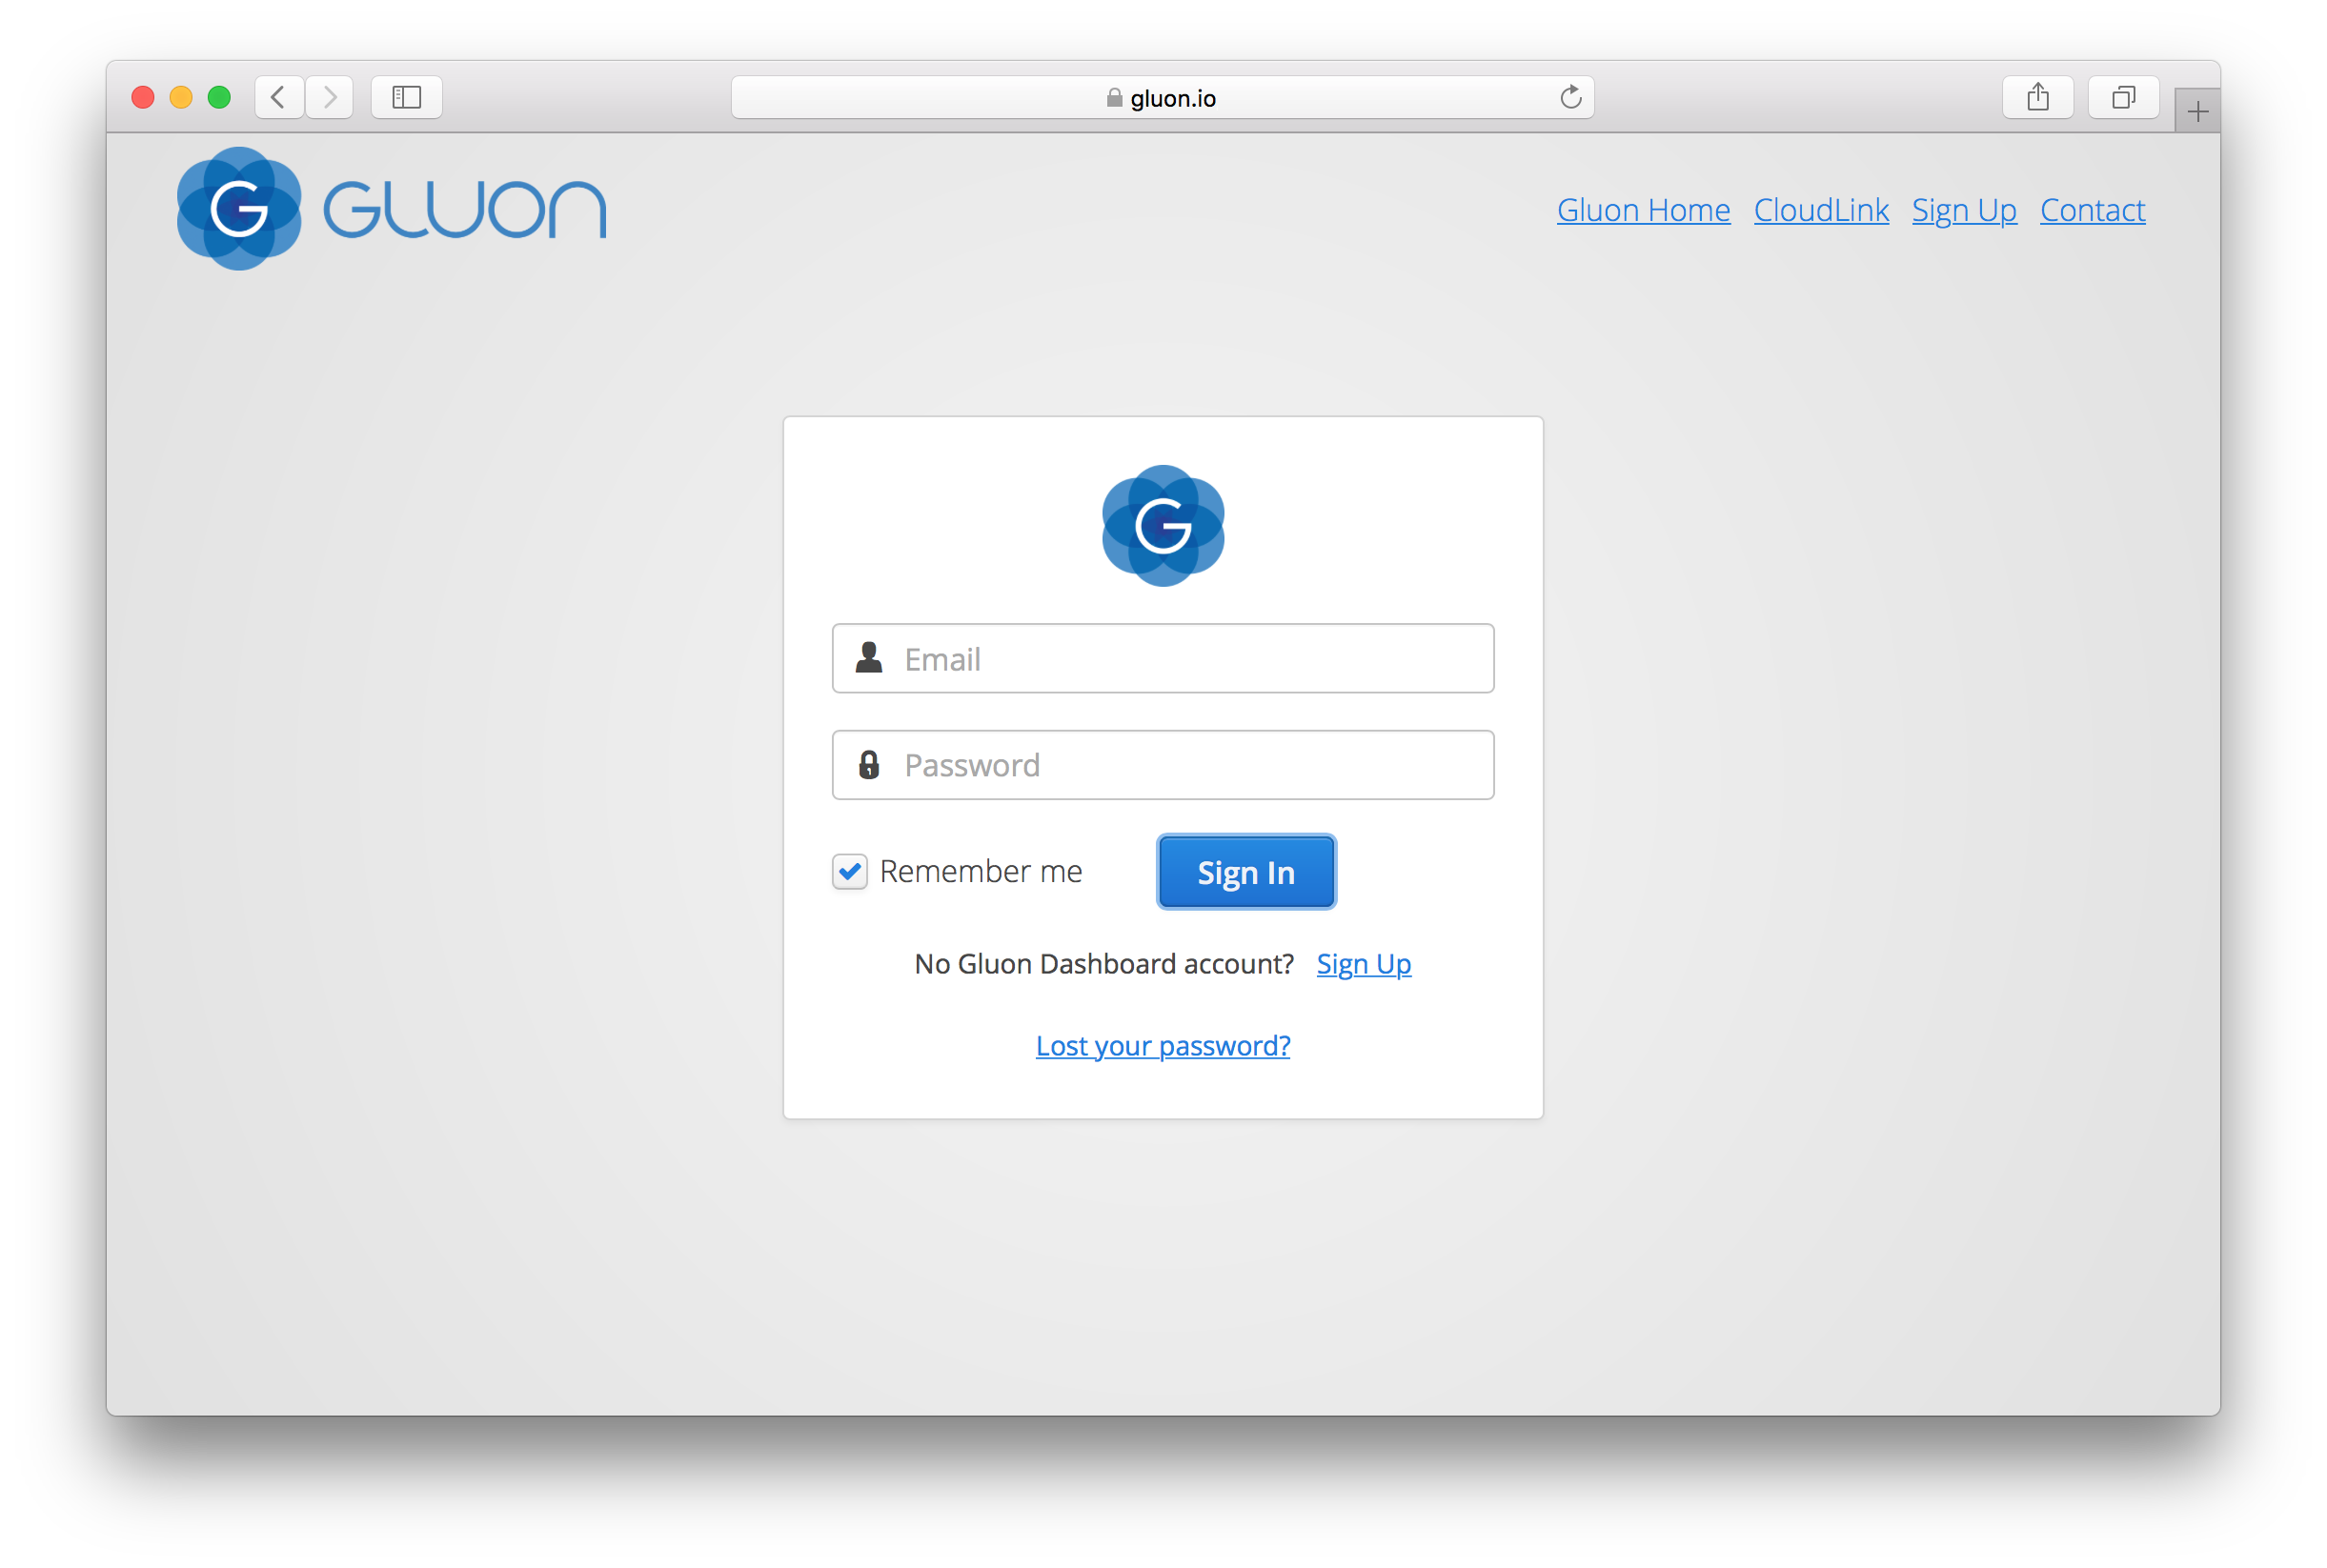 Gluon CloudLink Documentation